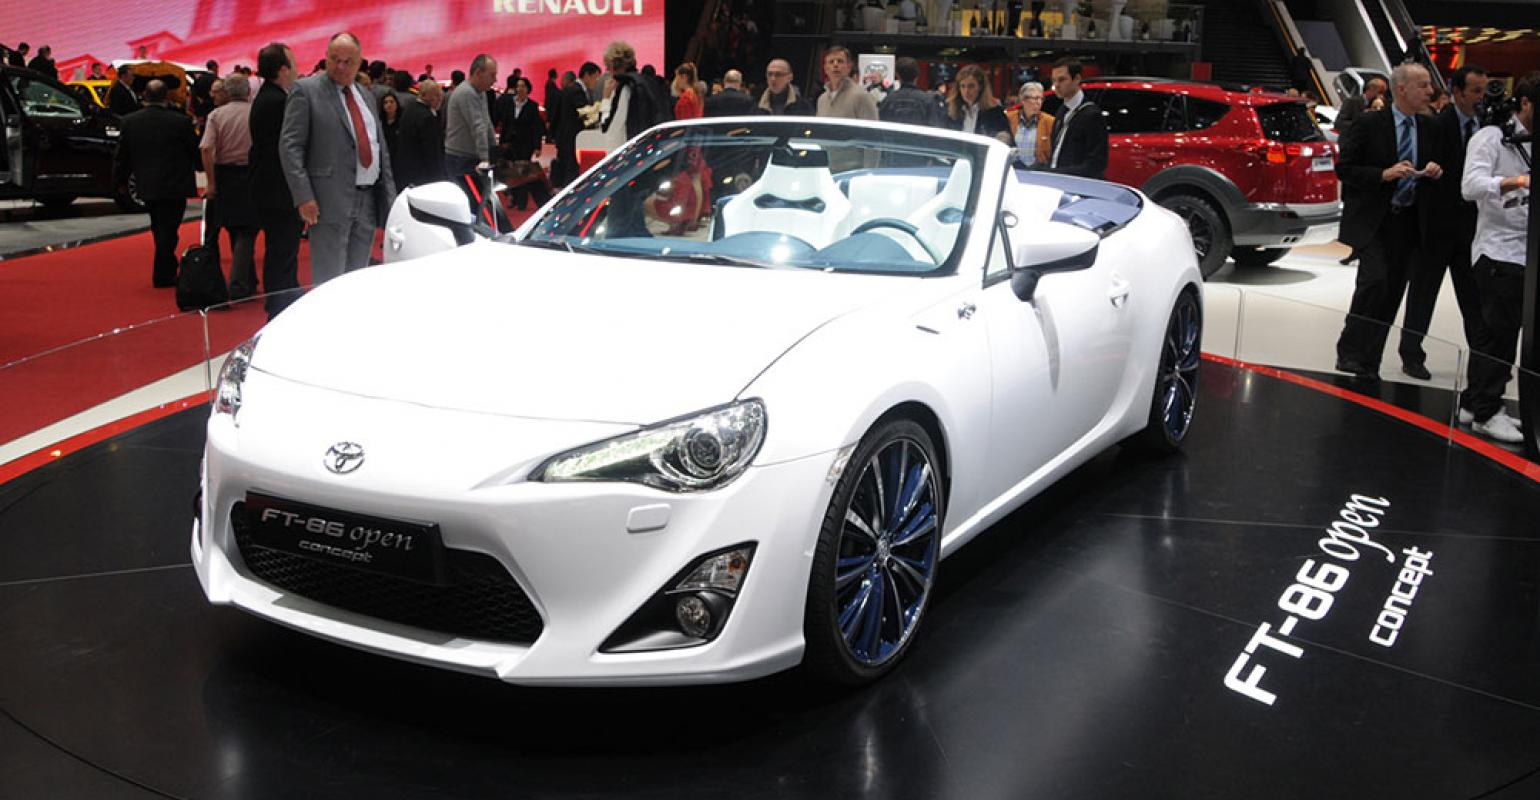 Scion Trying To Make Case For Fr S Convertible As Subaru Says No Thanks